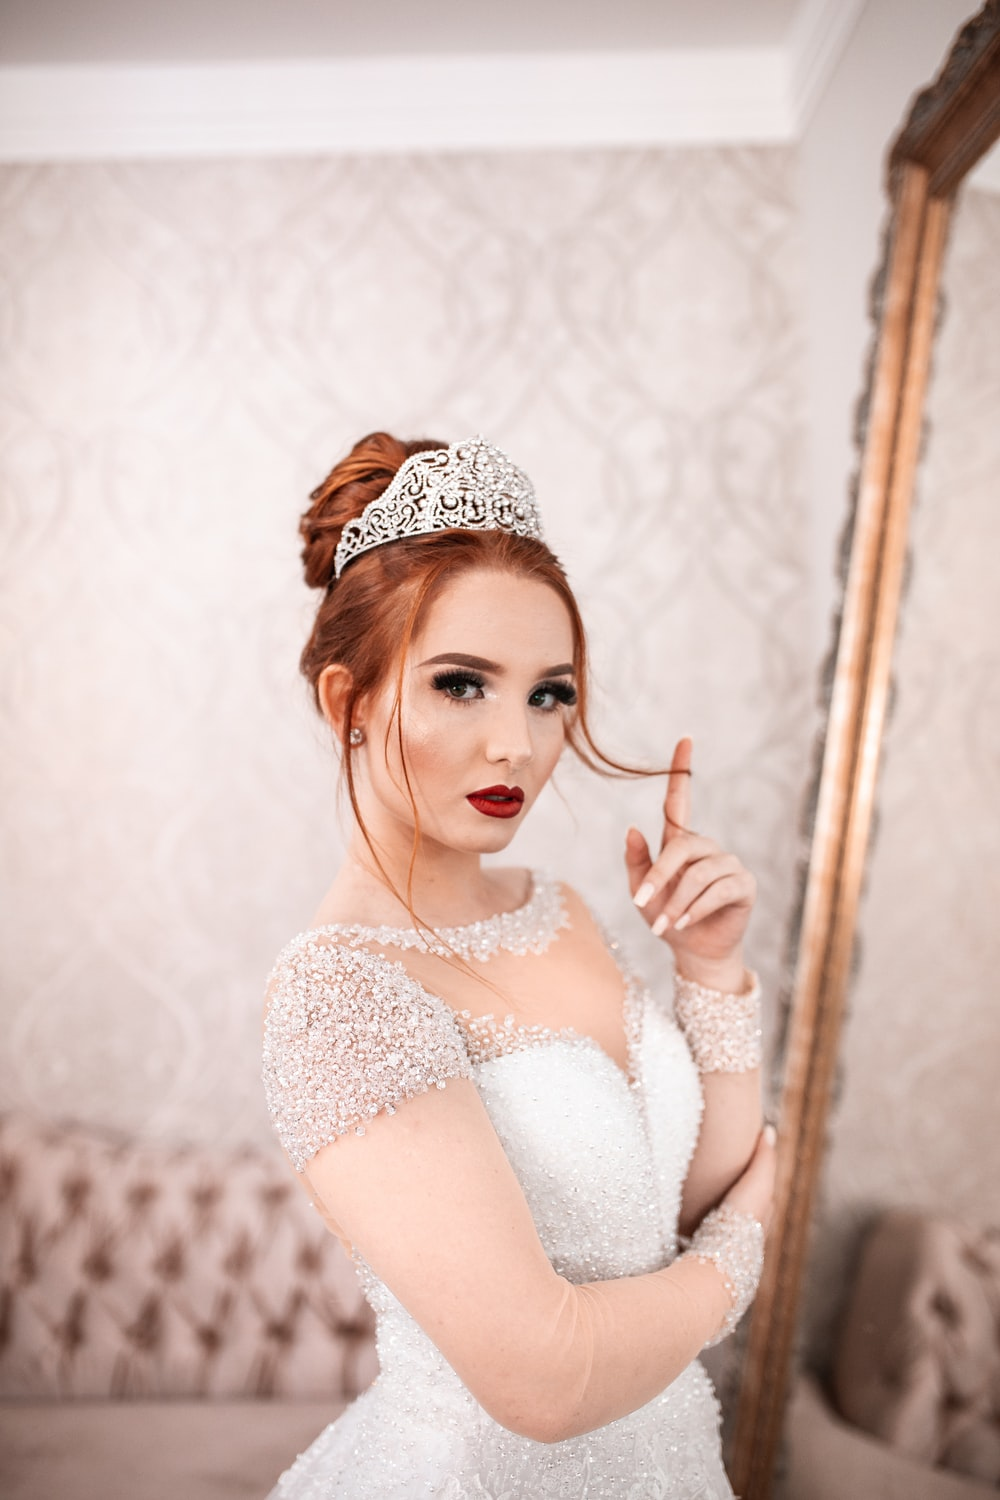 woman in white wedding gown facing the mirror